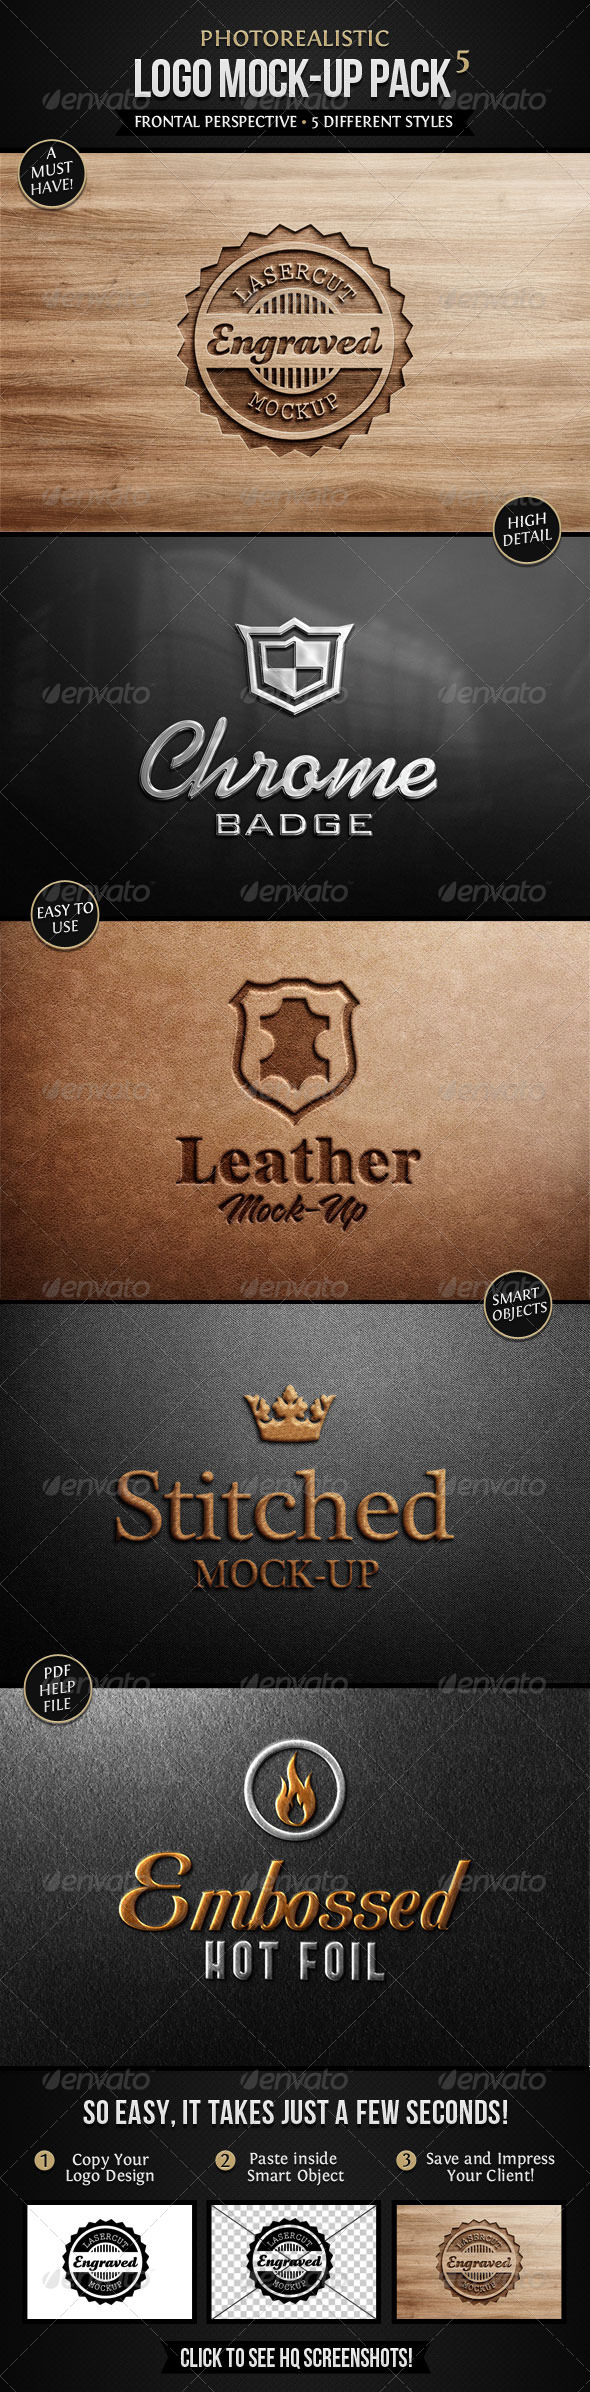 Photorealistic Logo Mock-Up Pack 5 - Print Product Mock-Ups